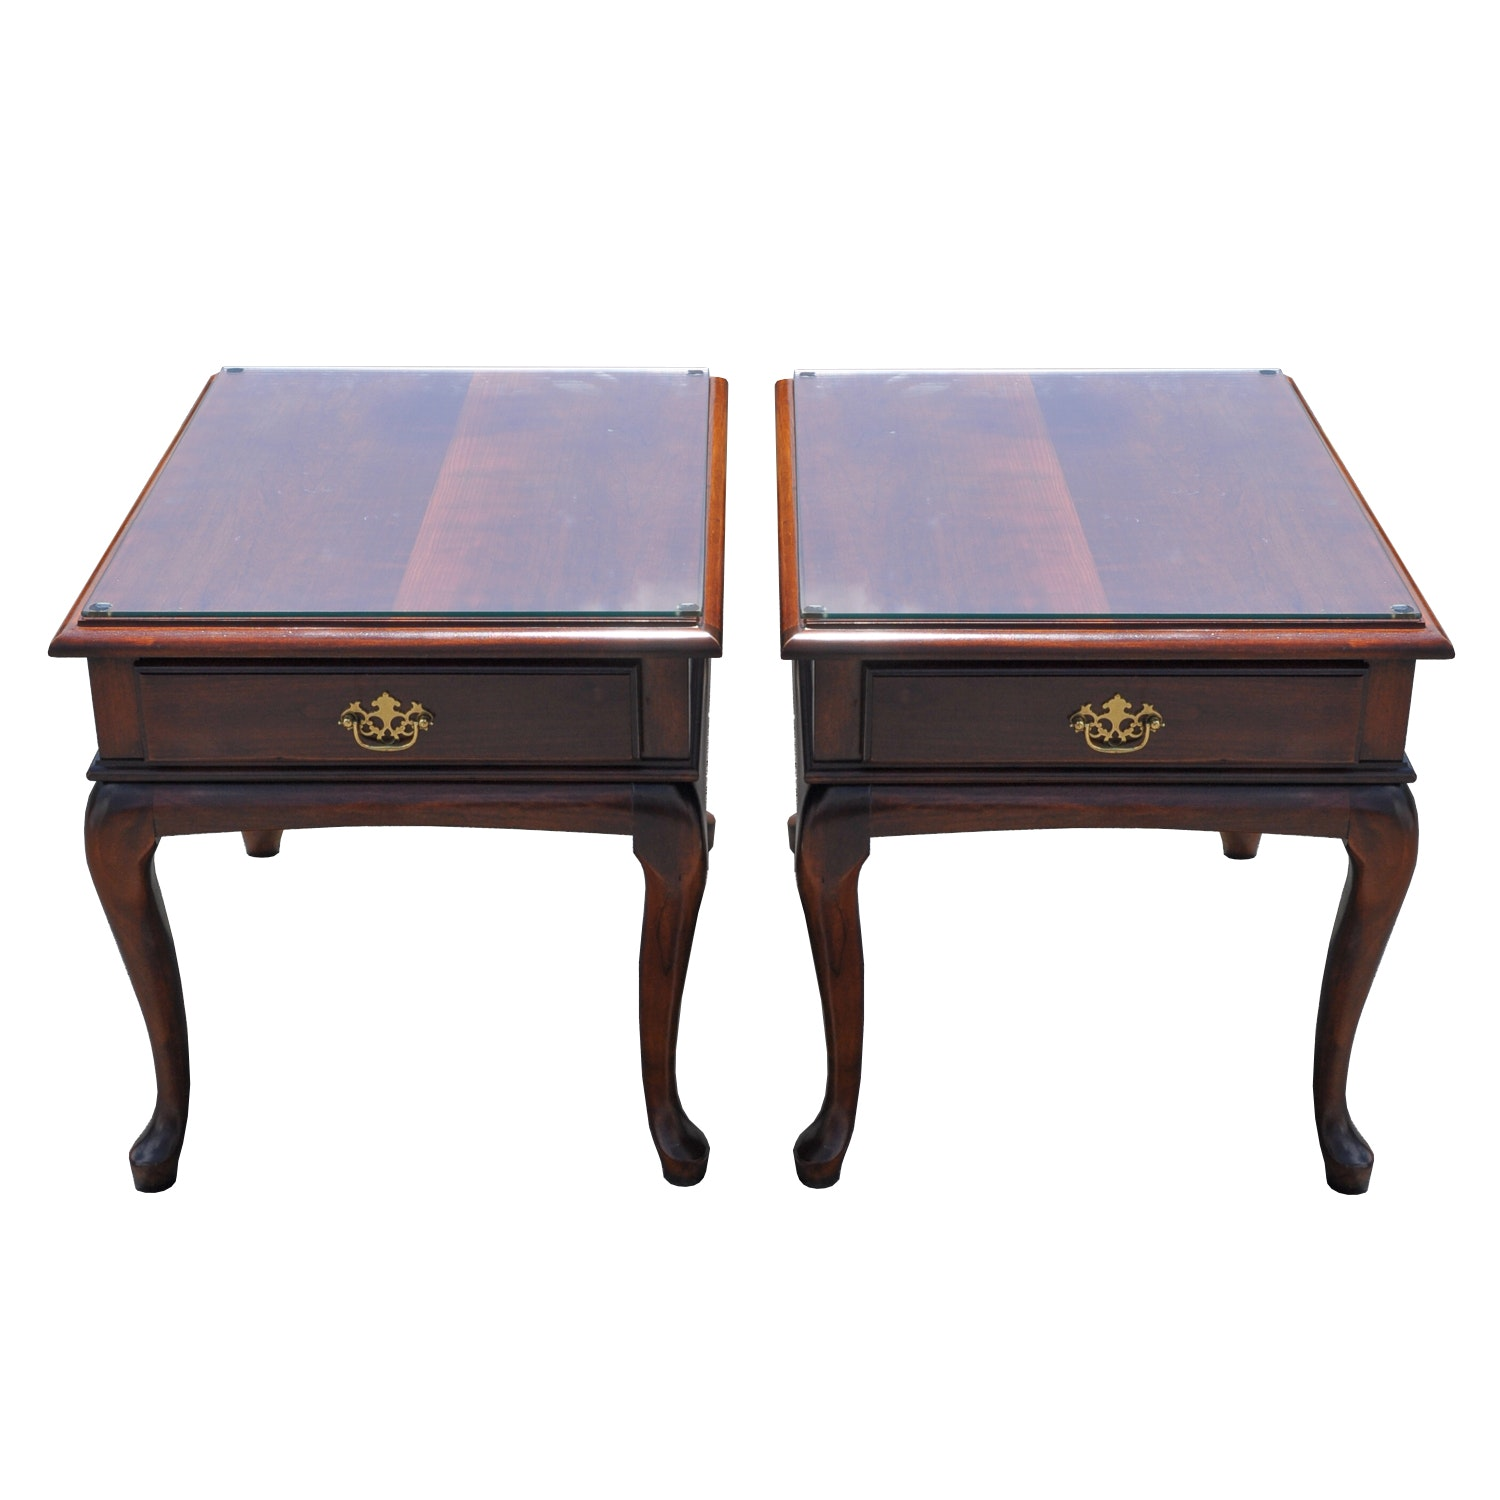 Pair Of Cherry Wood Queen Anne Style Side Tables ...